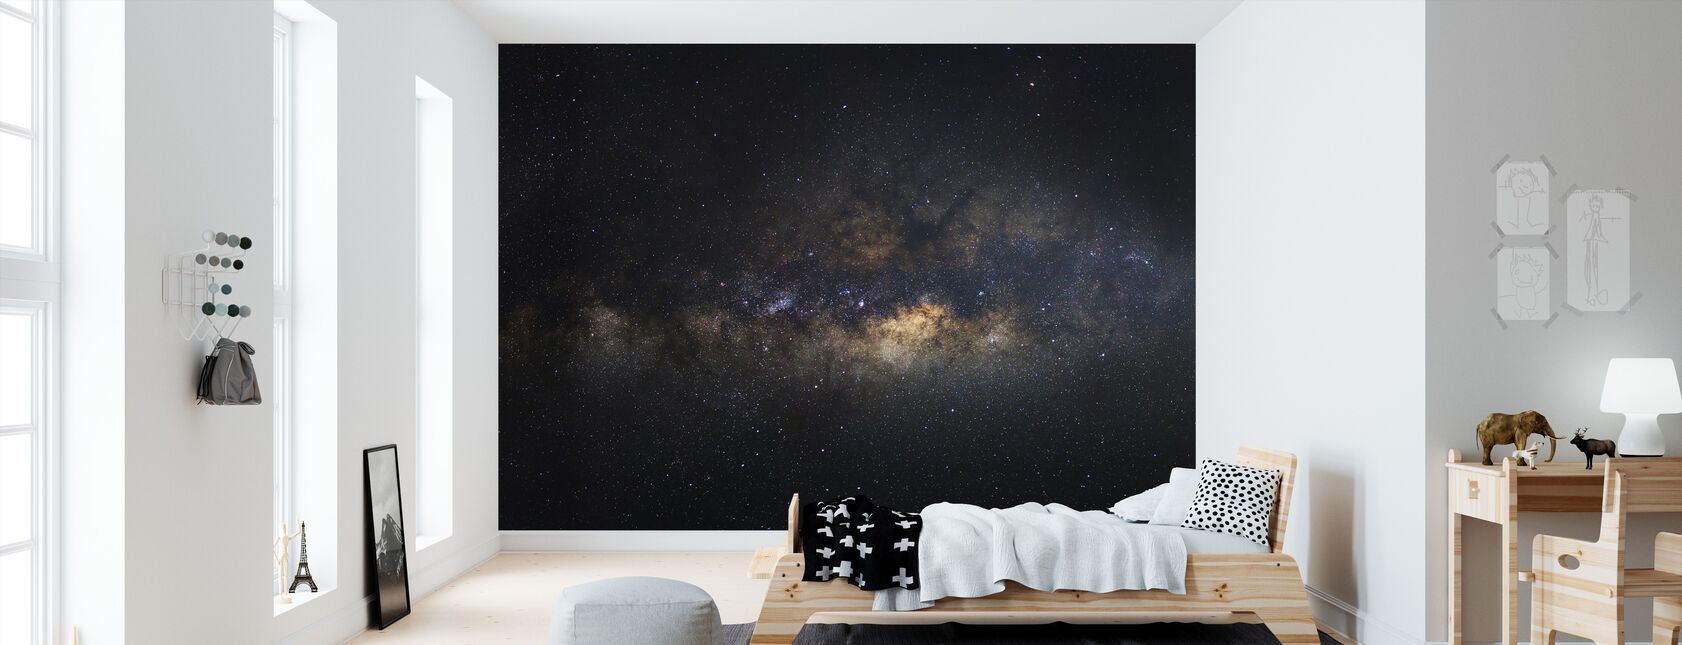 Milky Way Galaxy - Long Exposure - Wallpaper - Kids Room